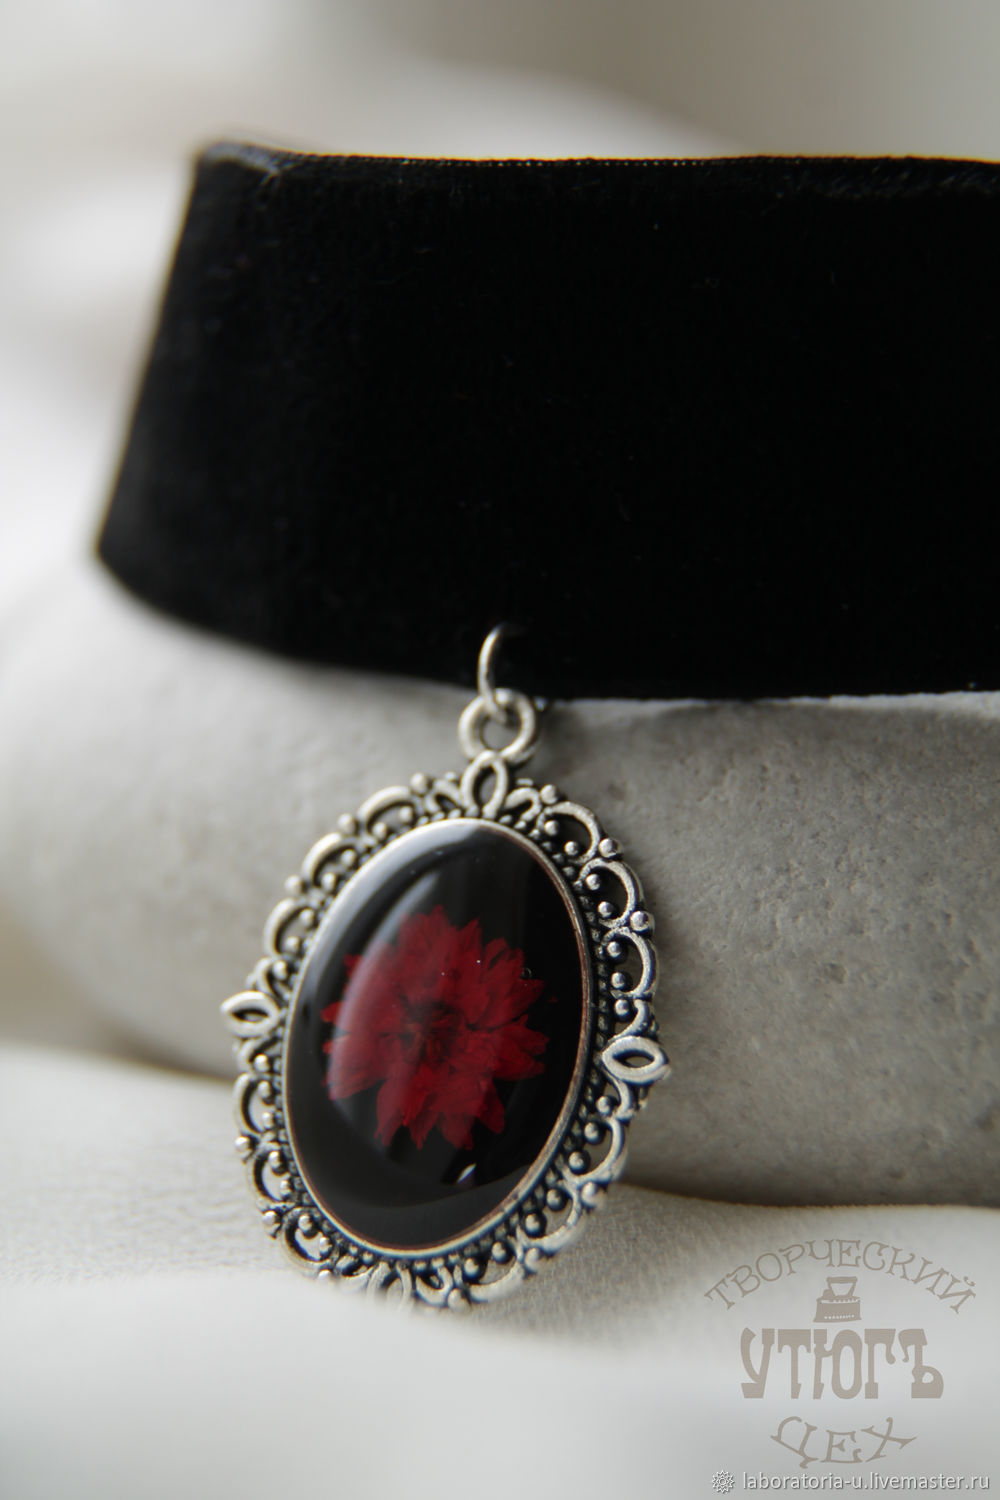 Black and red jewelry set from jewelry resin with real flowers, Jewelry Sets, Samara,  Фото №1